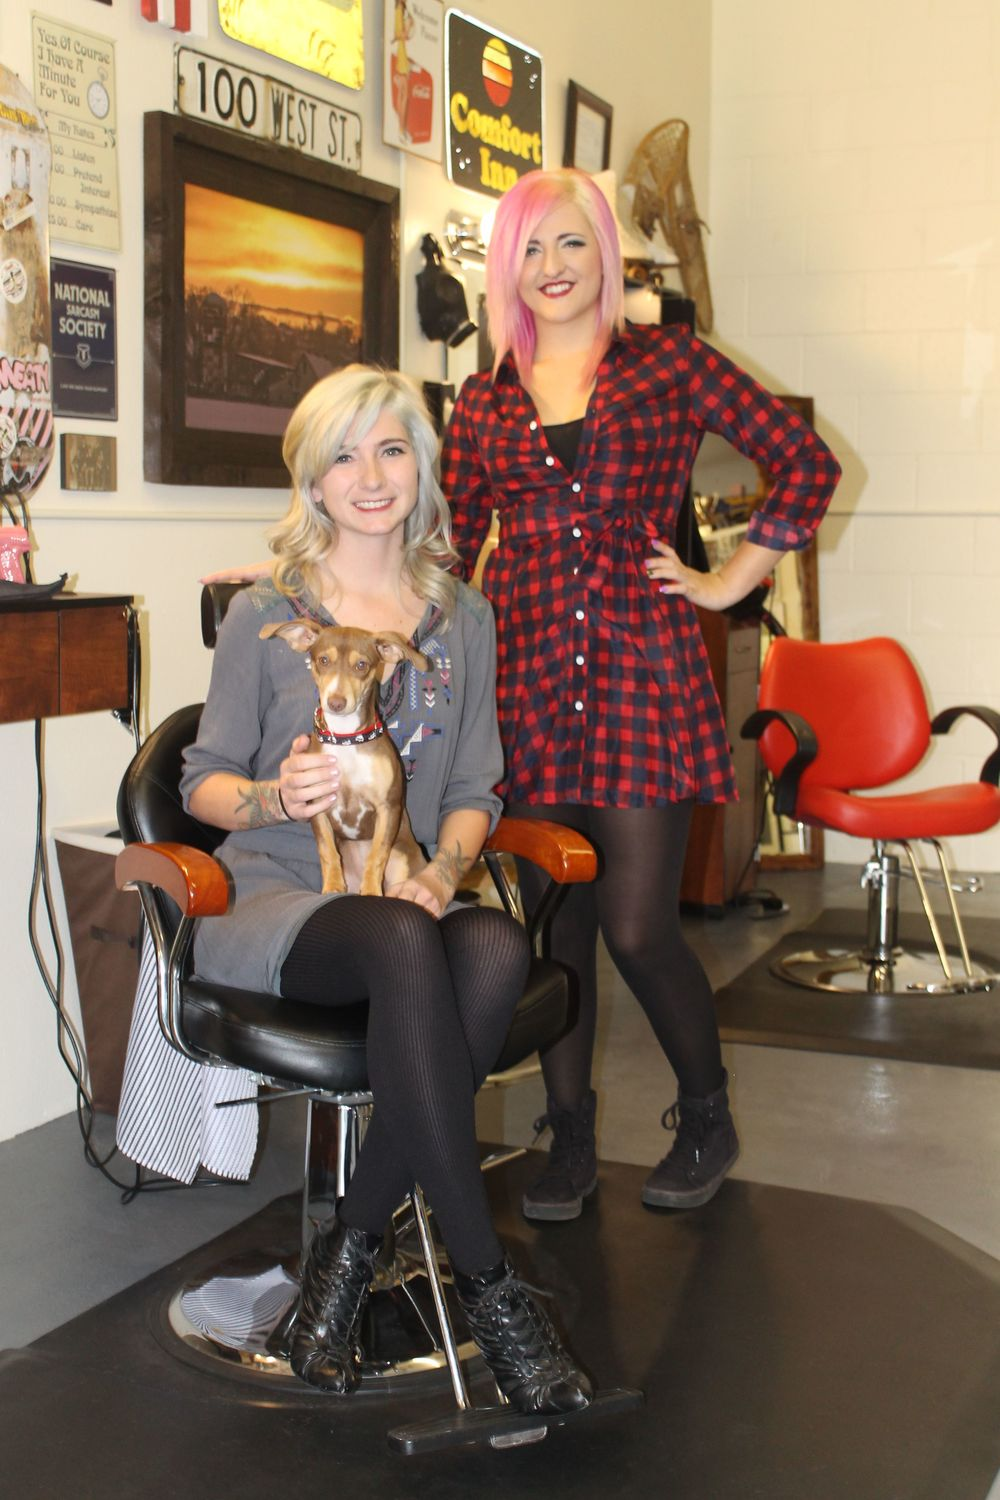 Pictured (left-right): Marci Aston, Classic Beauty & Barber owner and barber/stylist, and new stylist and color specialist, Breea Mahaffey Snelson, along with their sweet shop pup, Sweeney.